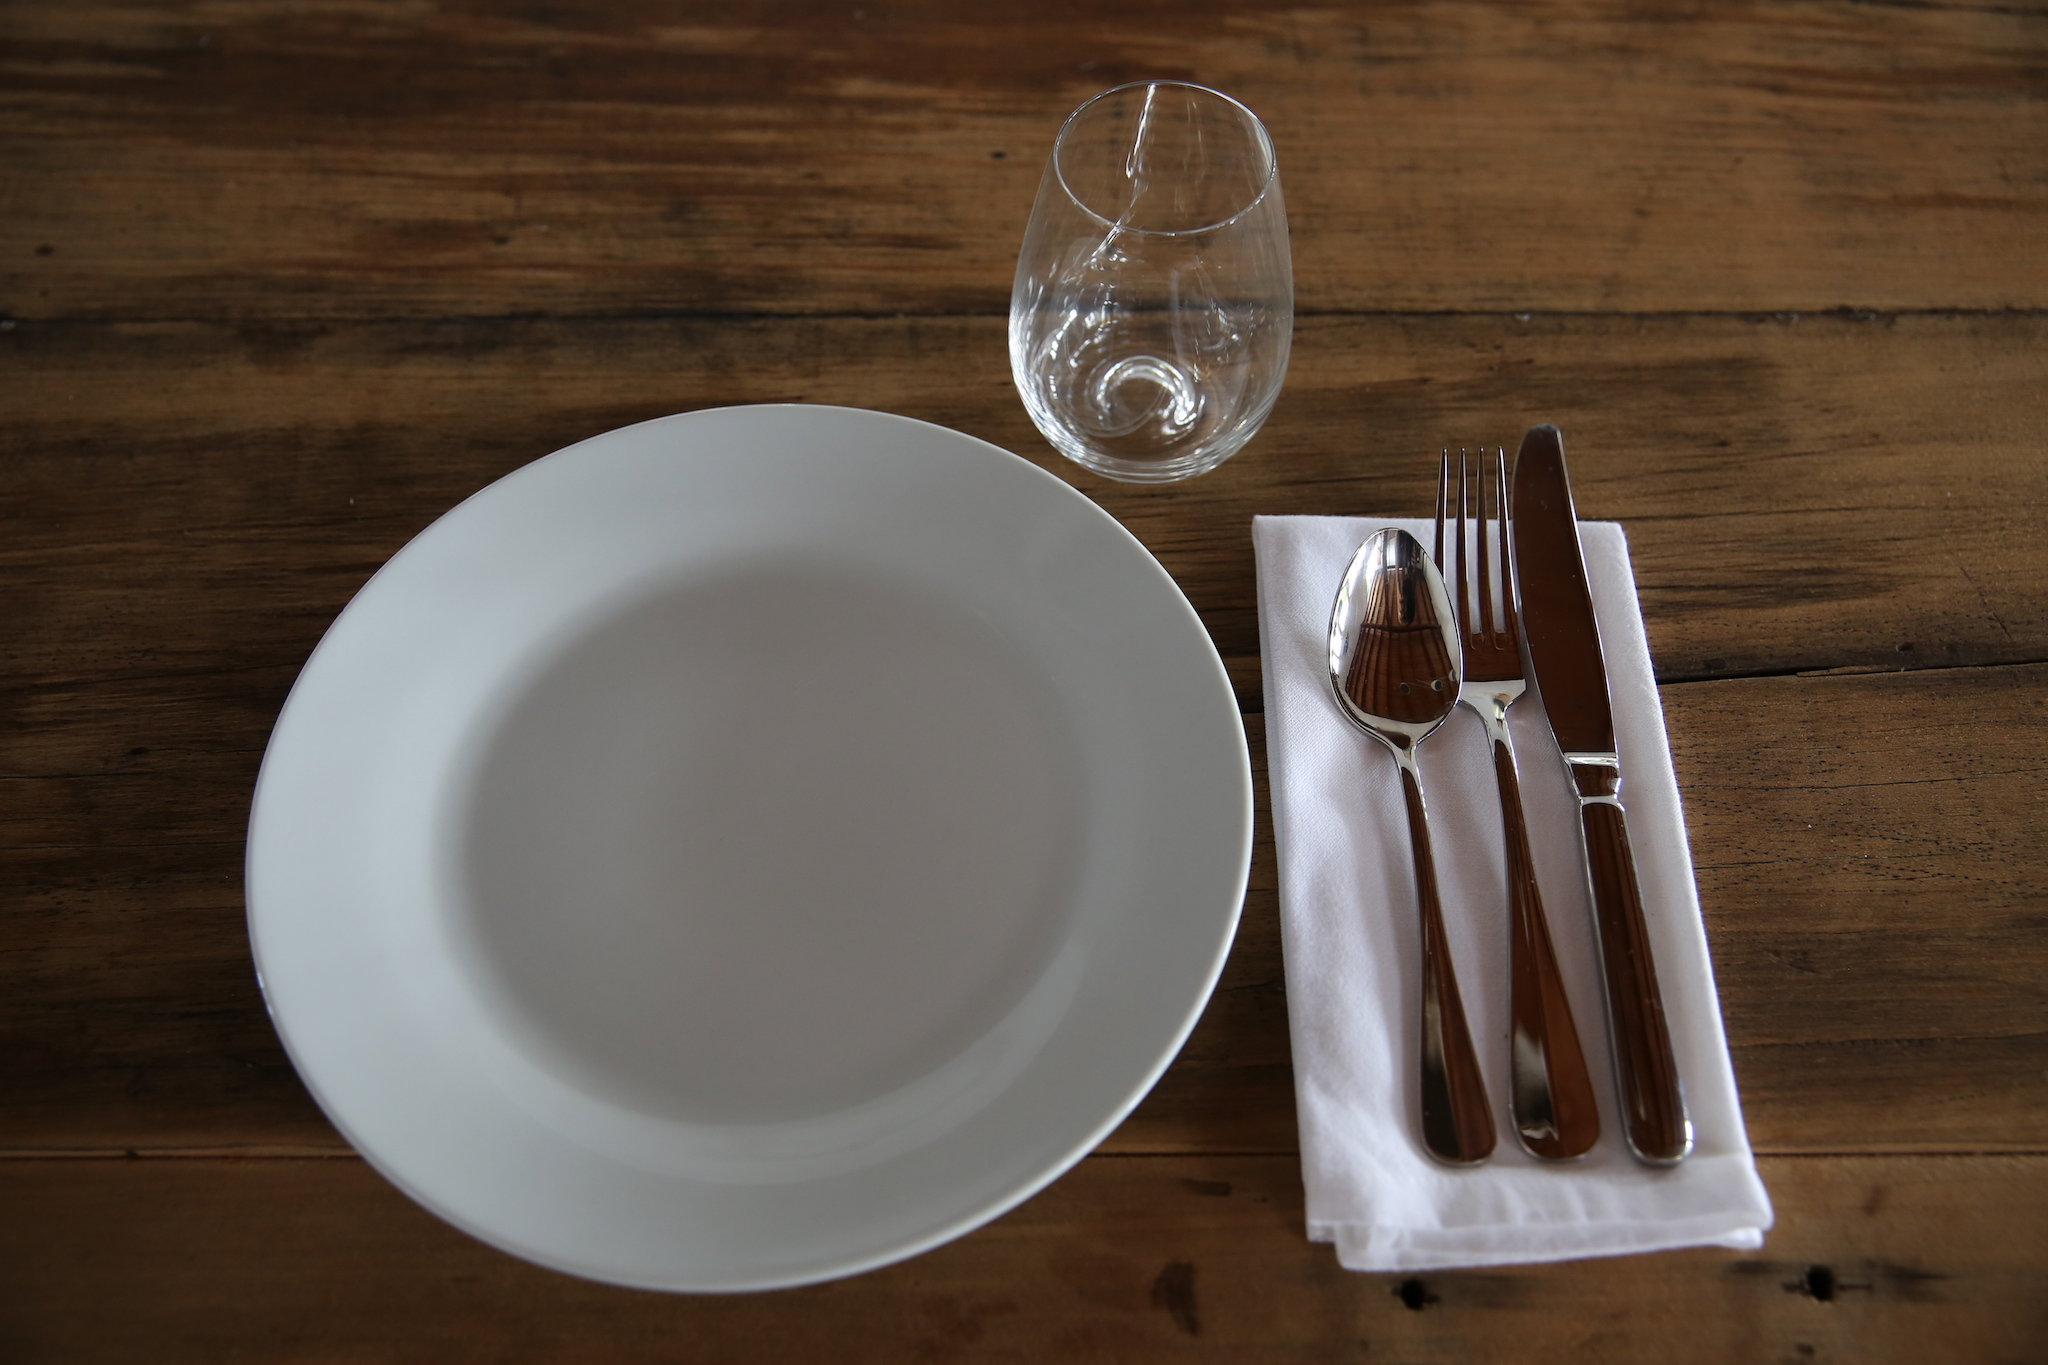 Dinner Plate (27cm). - Qty 110. $0.80 each